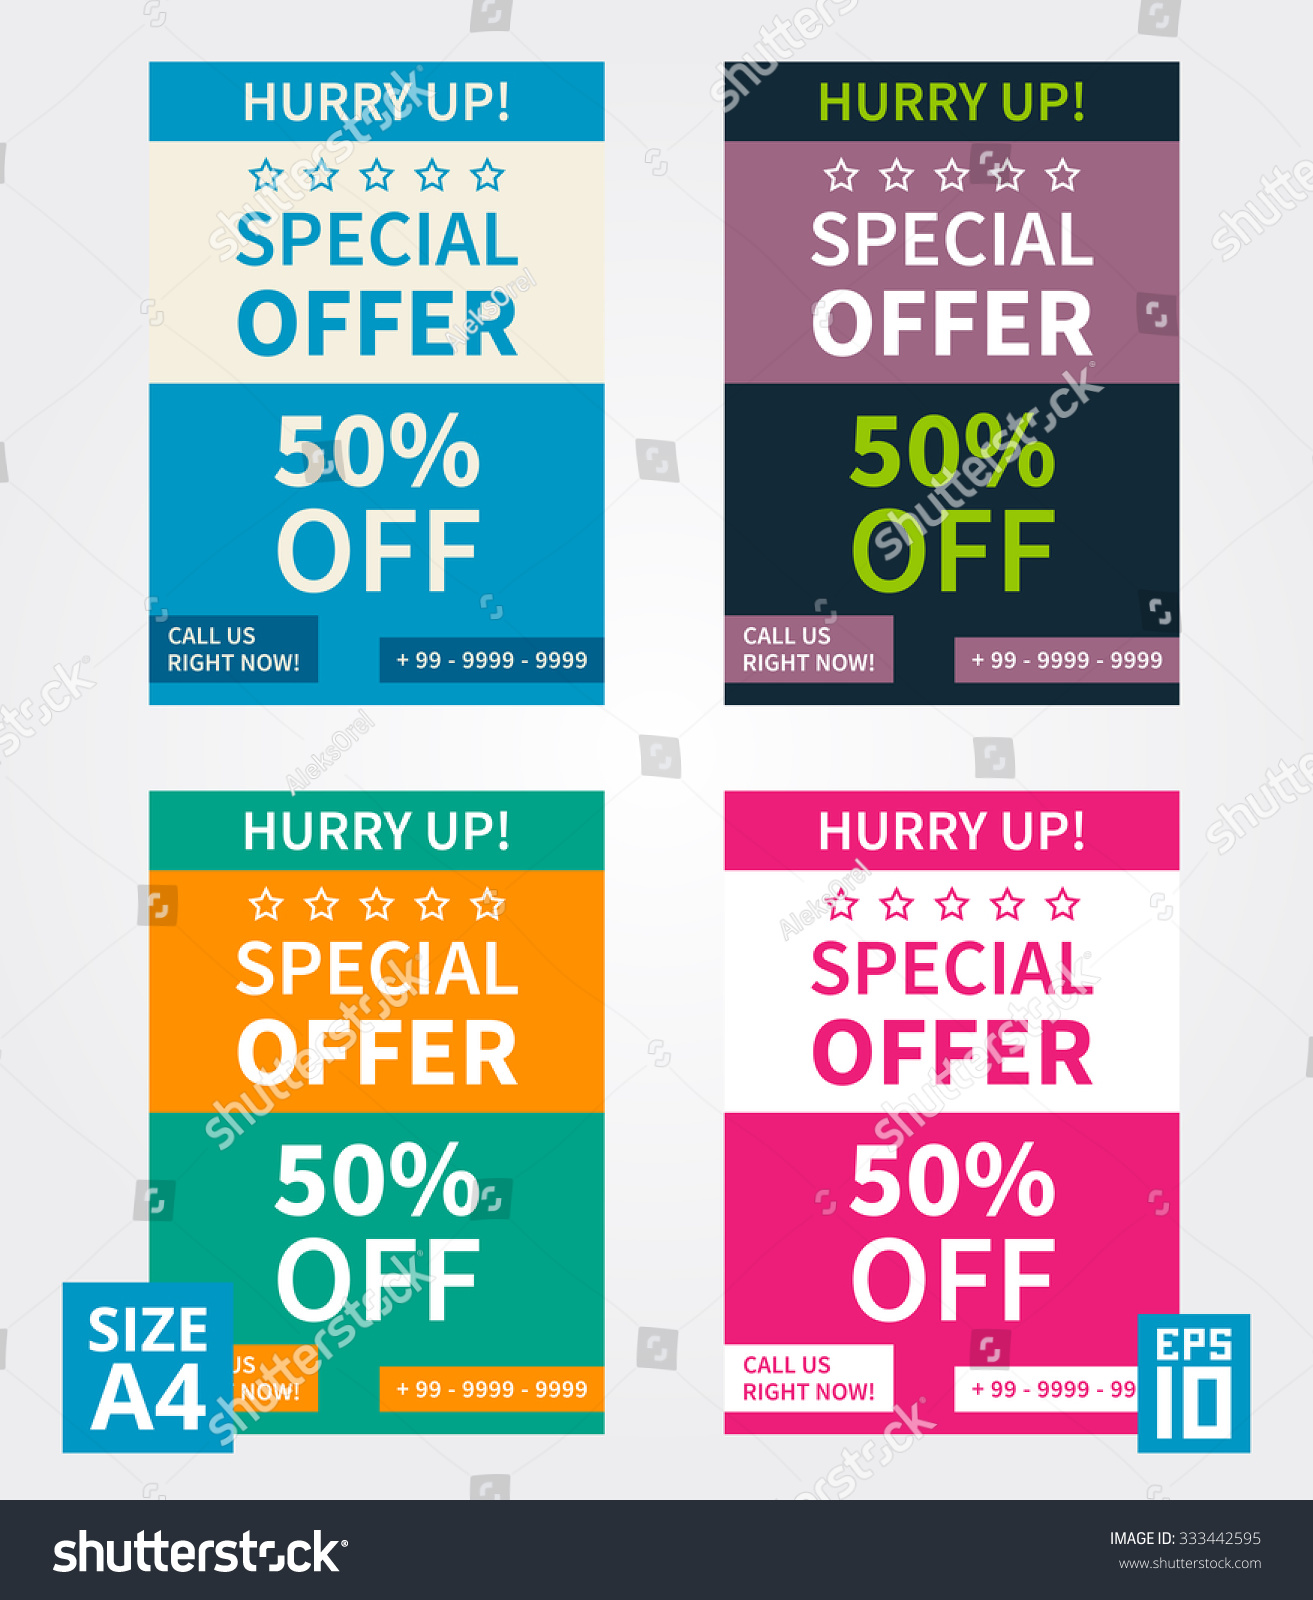 vector flyer design special offer business stock vector  vector flyer design special offer business template size a4